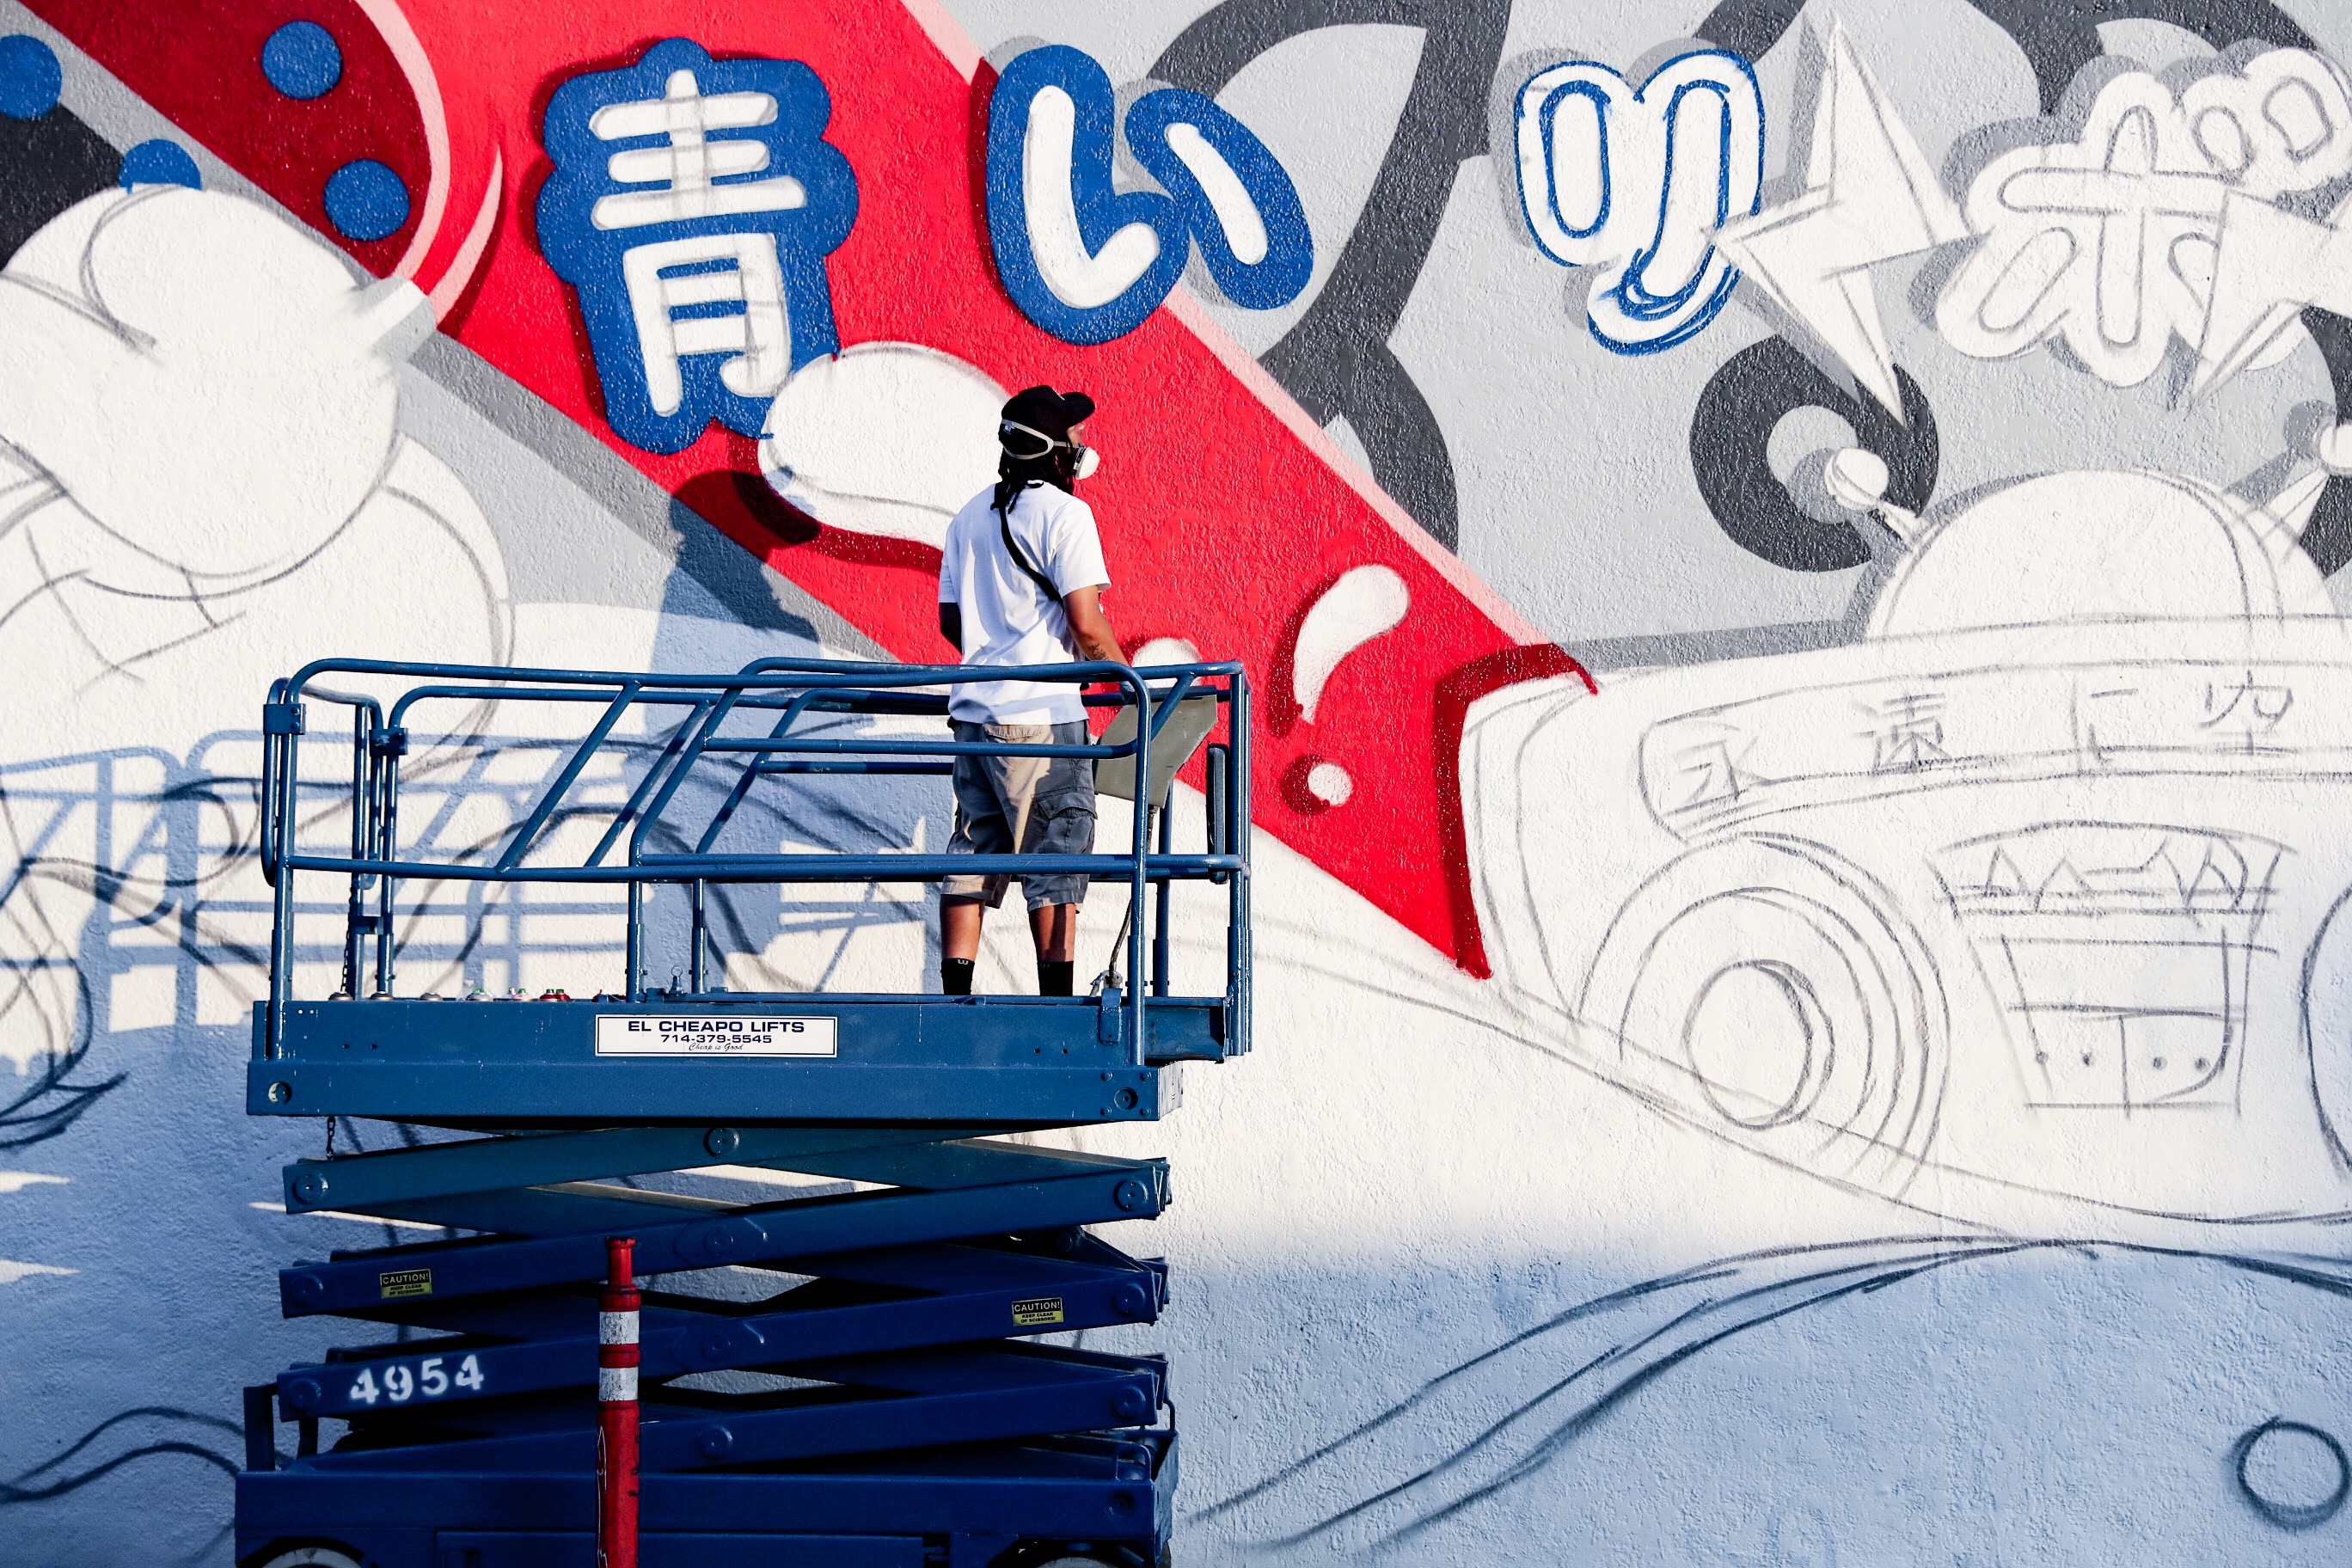 PABST MURAL (Los Angeles)